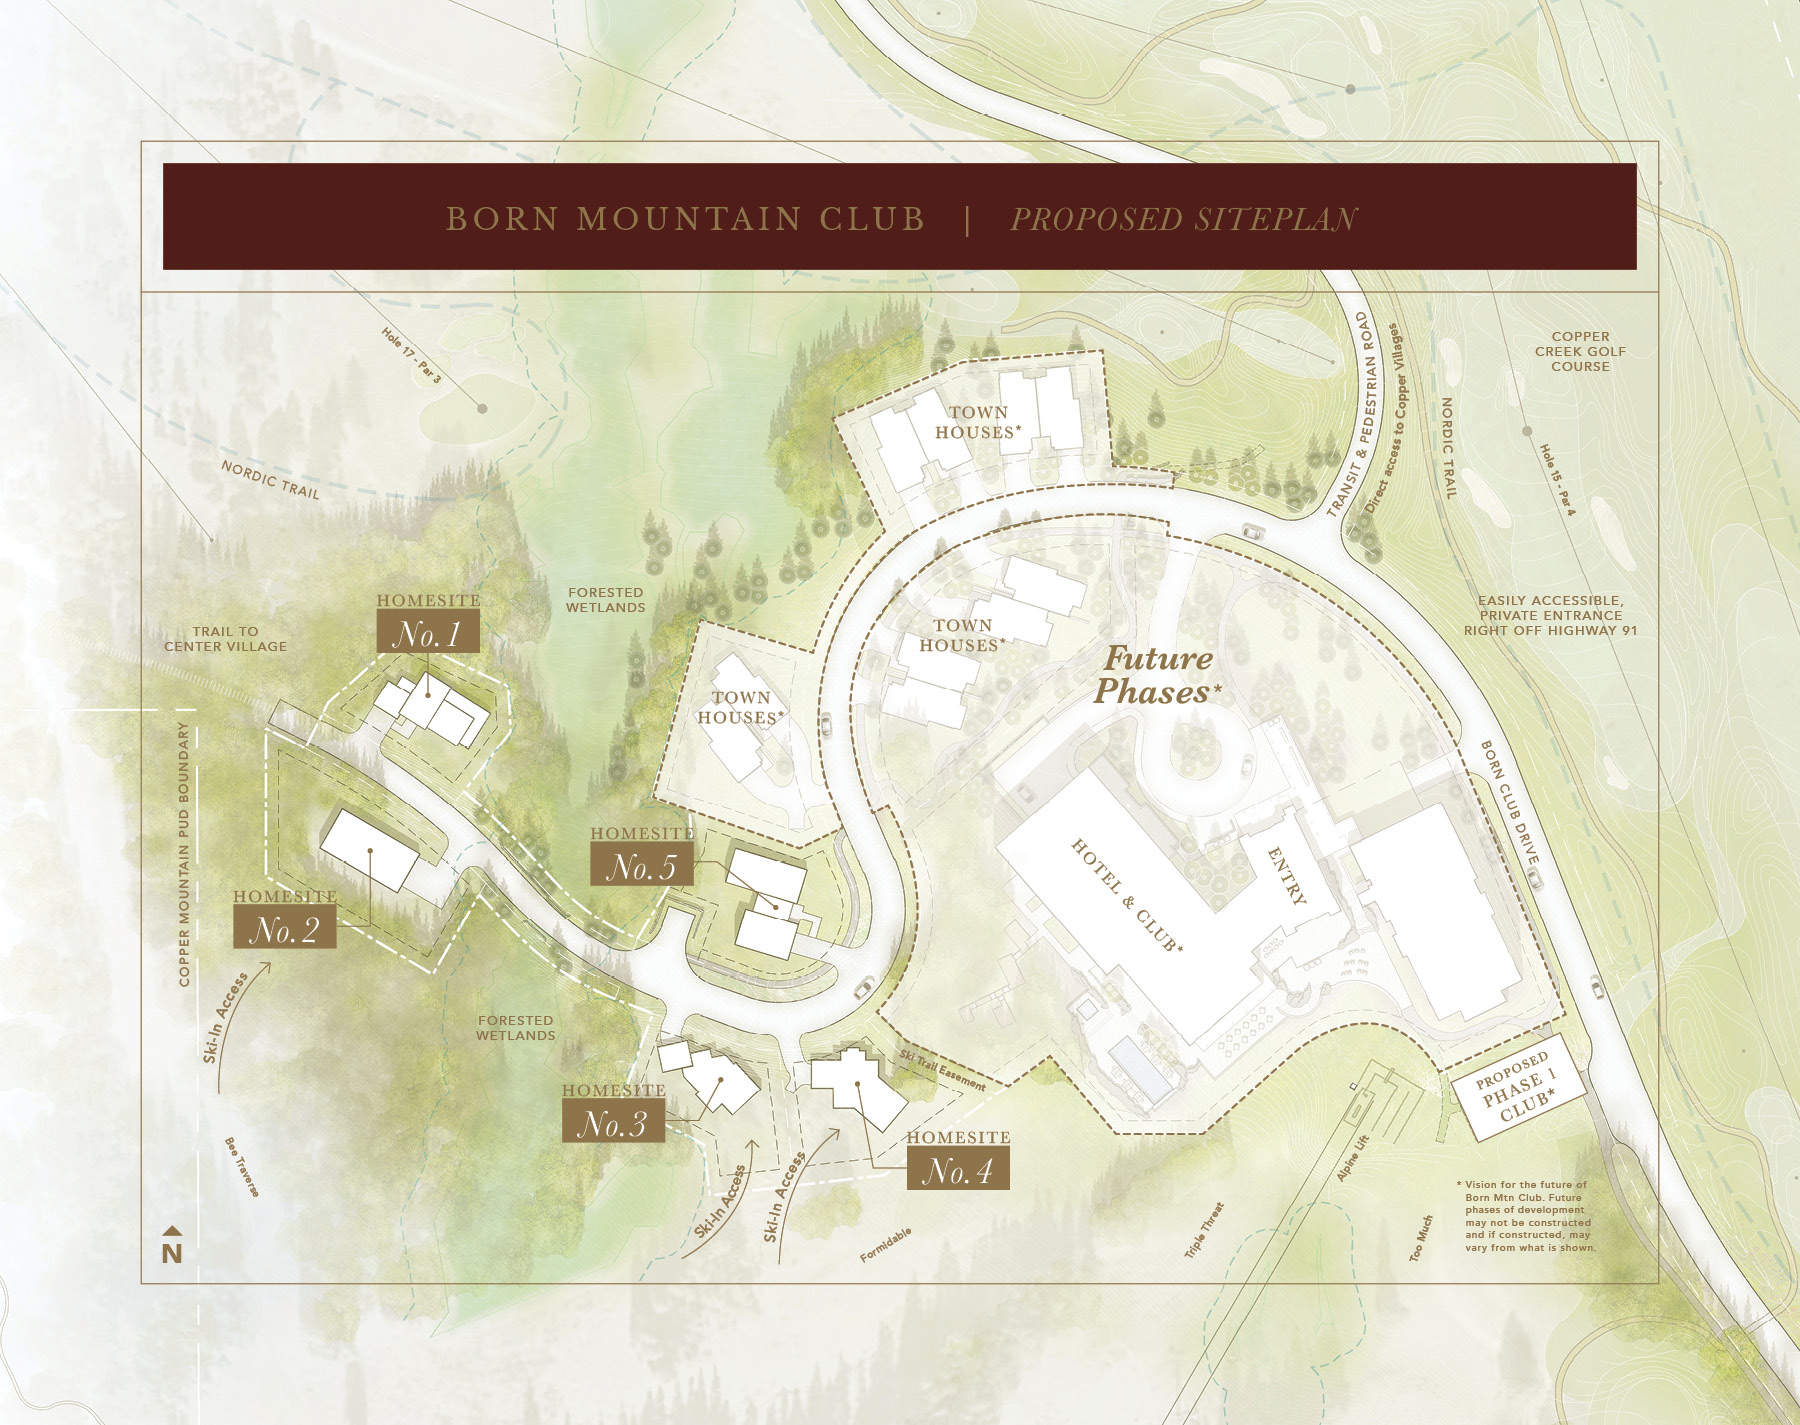 Proposed Siteplan for Born Mountain Club